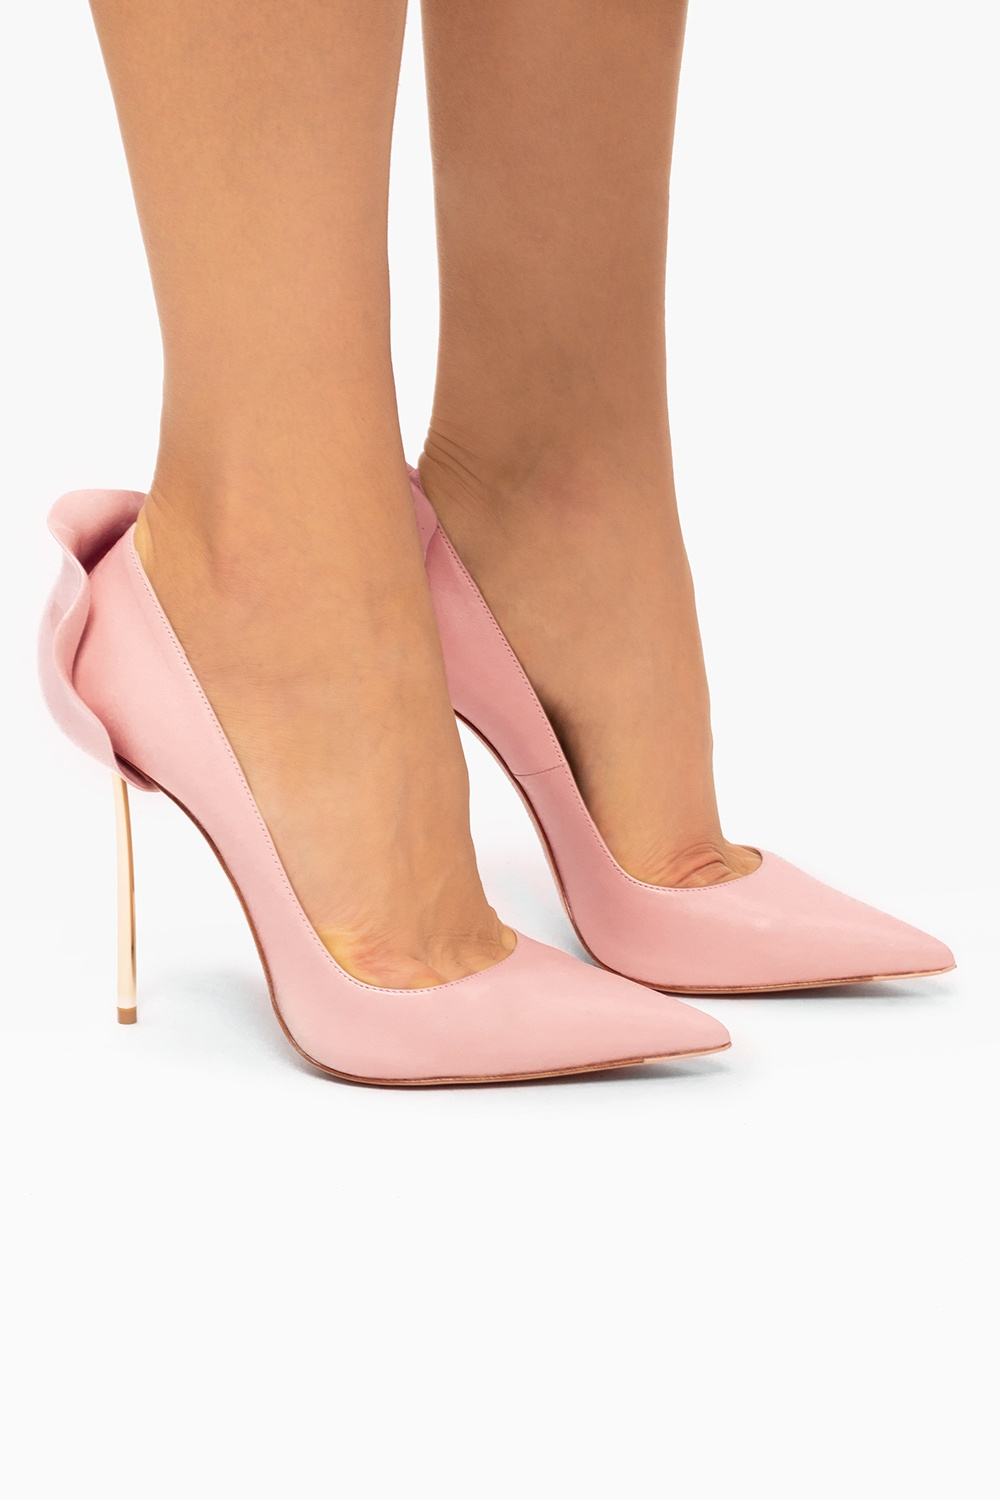 Le Silla 'Minerva' leather pumps